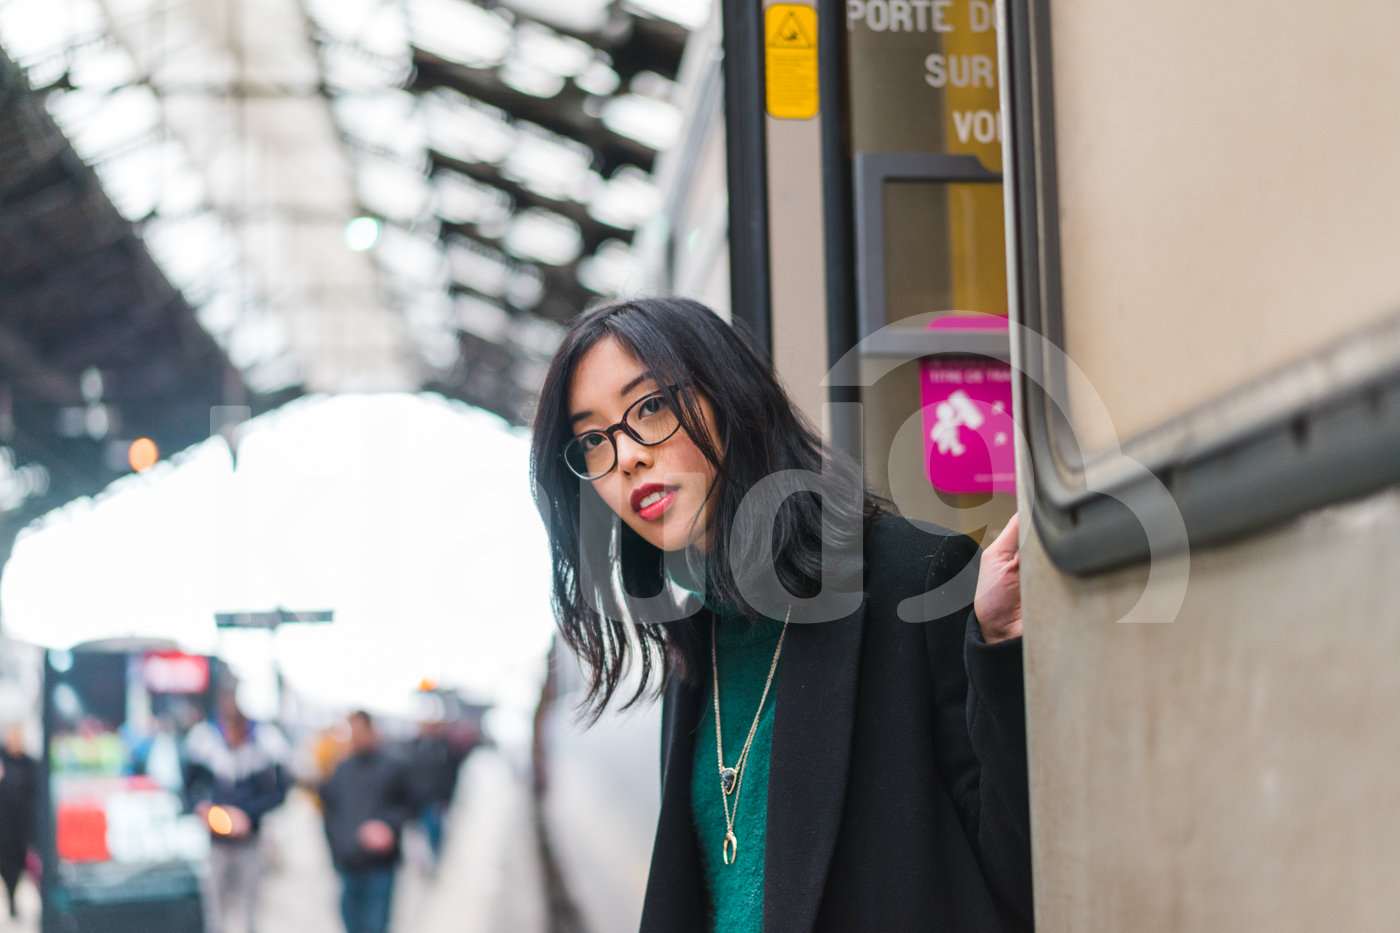 Young Asian woman stepping off a train